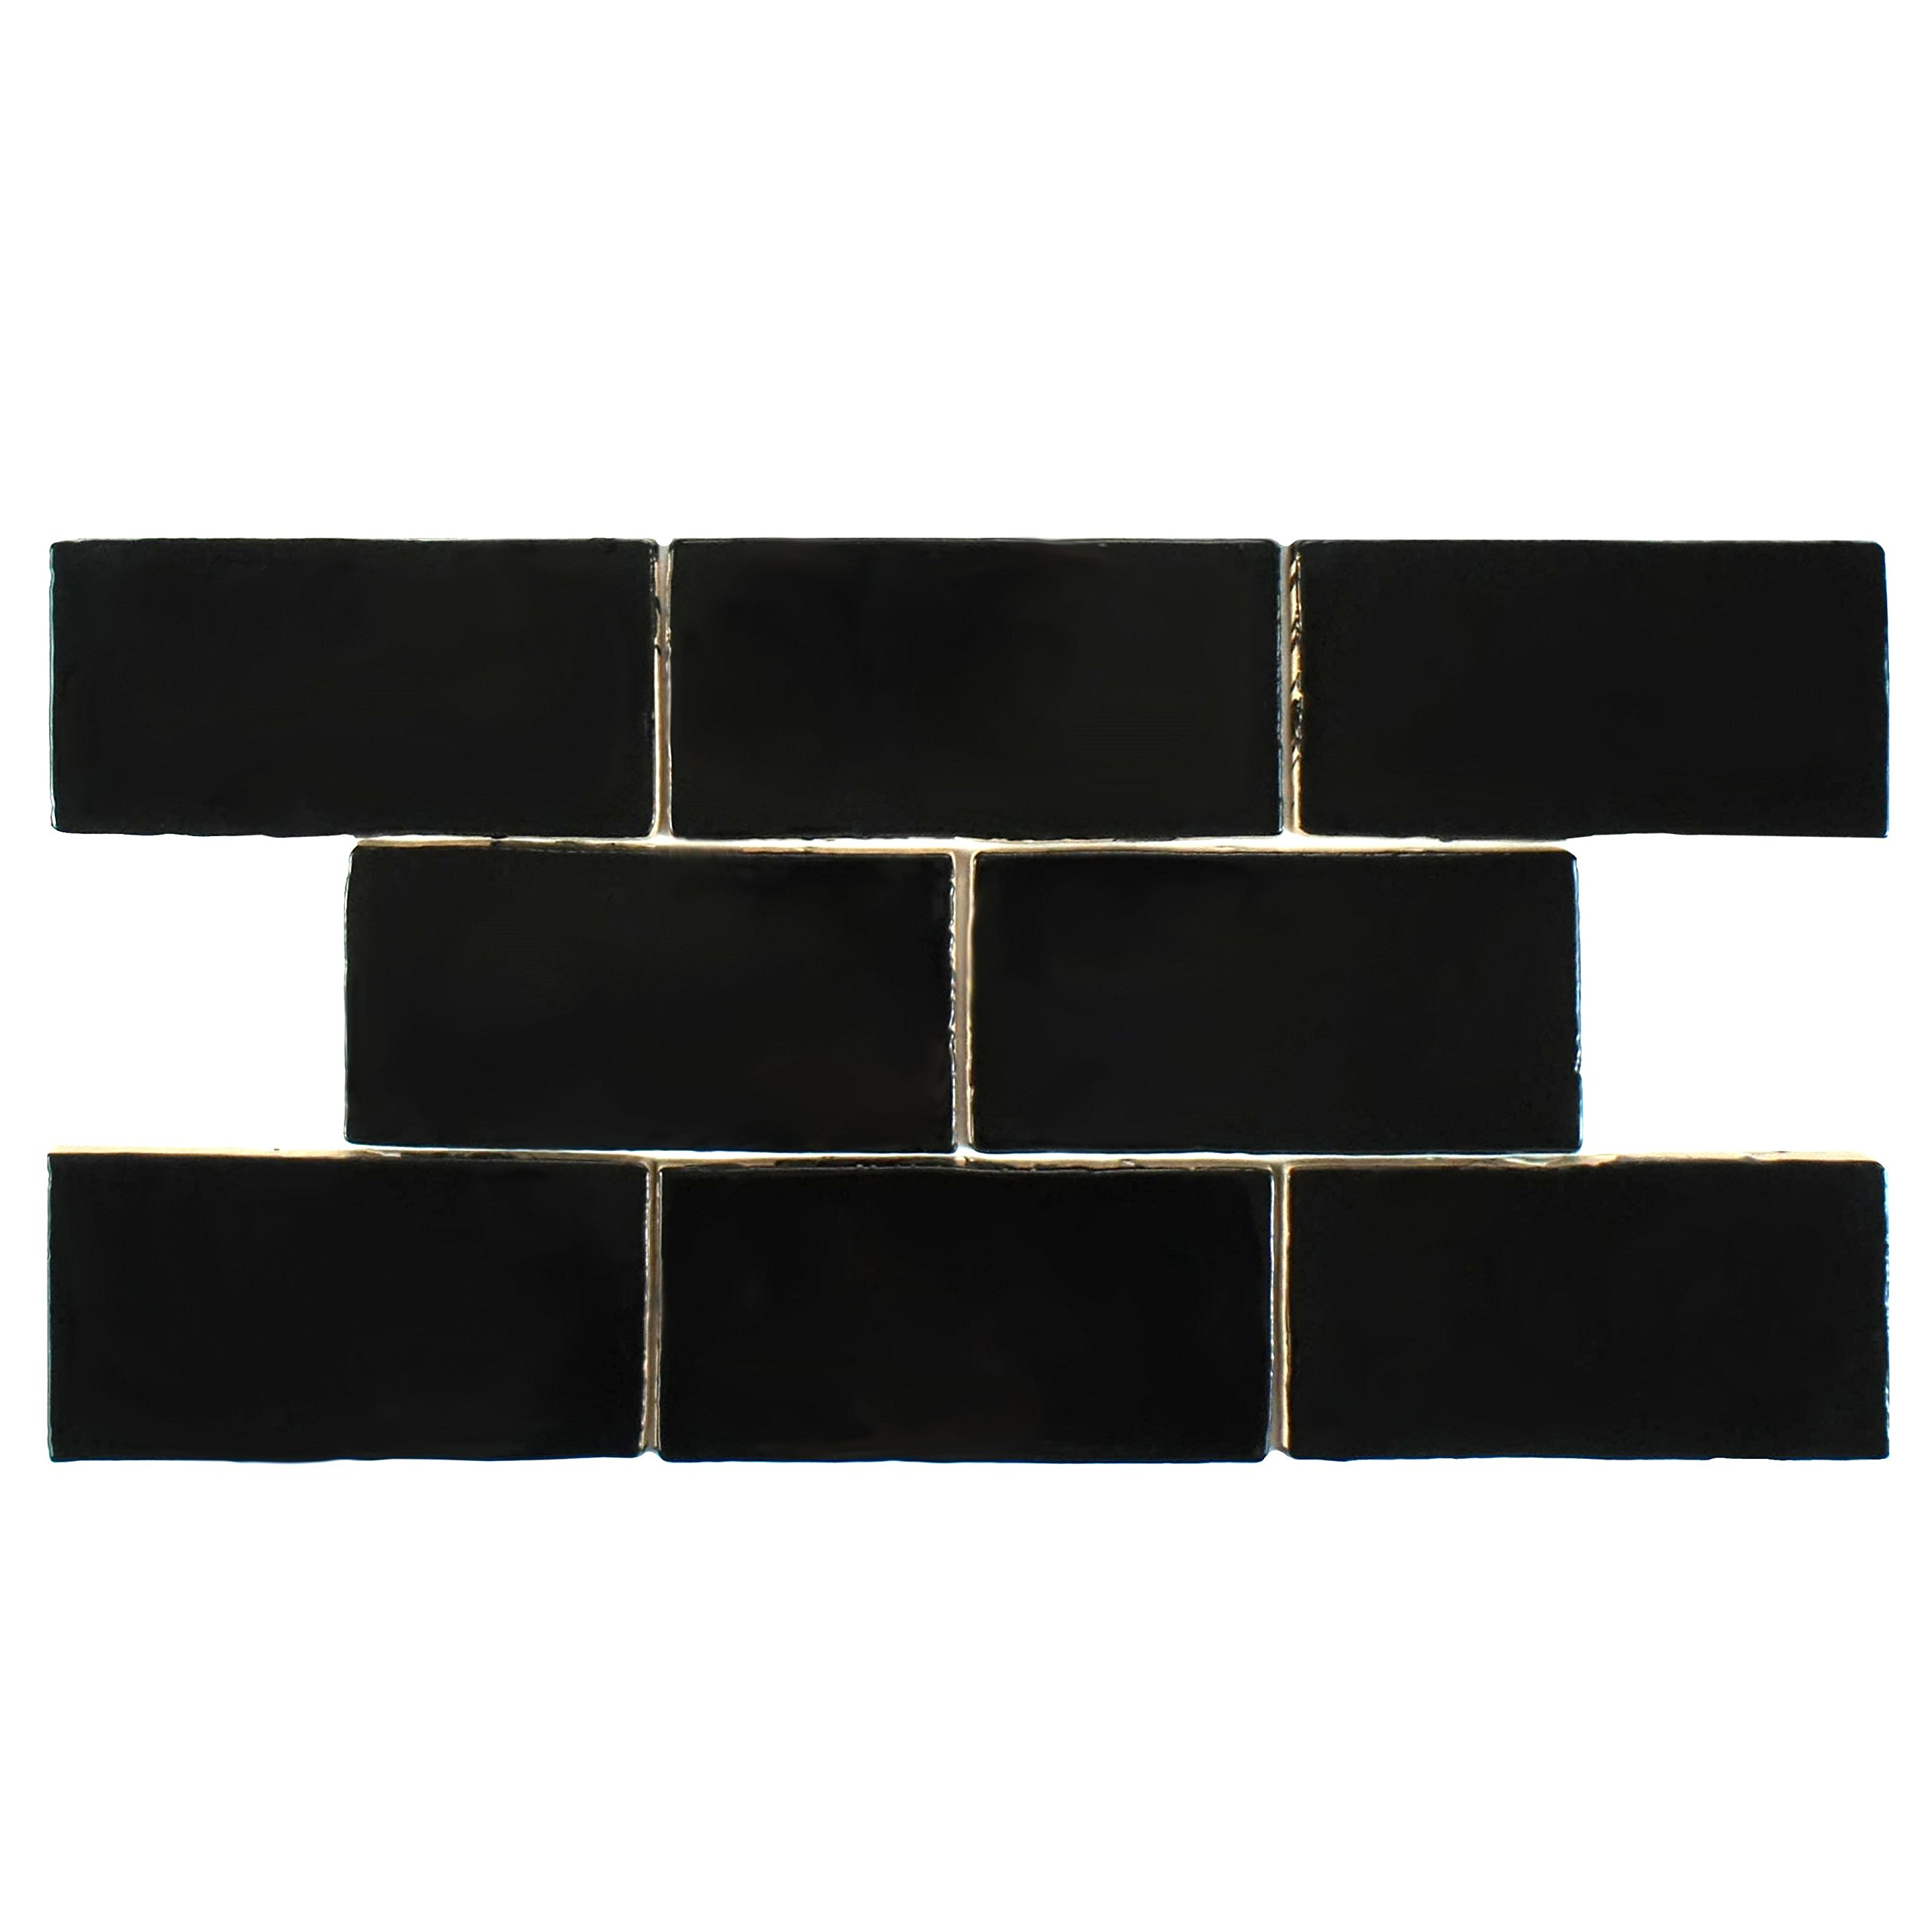 SomerTile WNU36CNE Penn Nero Ceramic Wall Tile, 3'' x 6'', Black by SOMERTILE